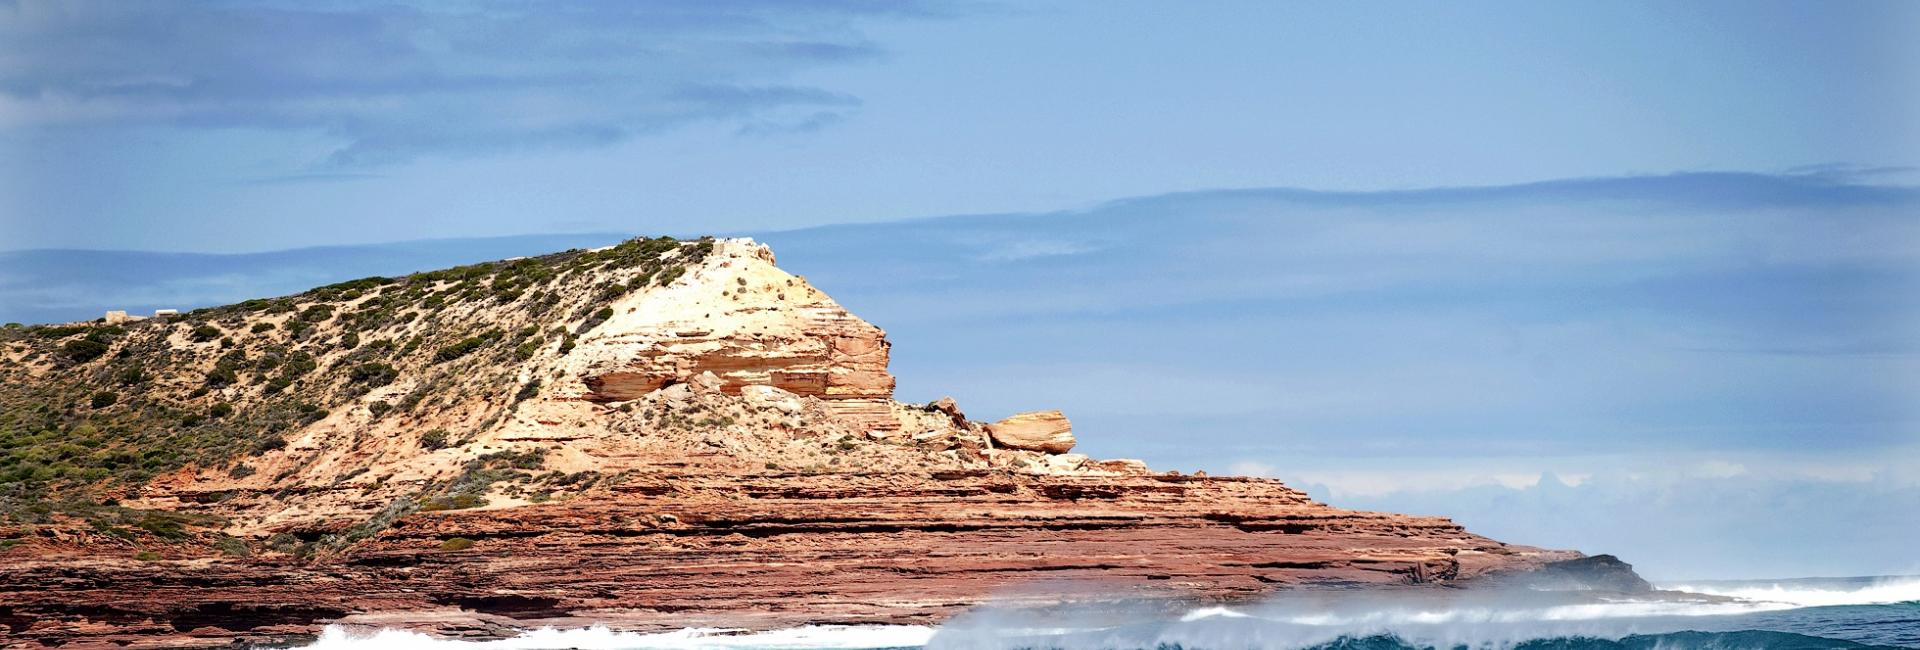 Red Bluff Kalbarri Beach Surf Wave